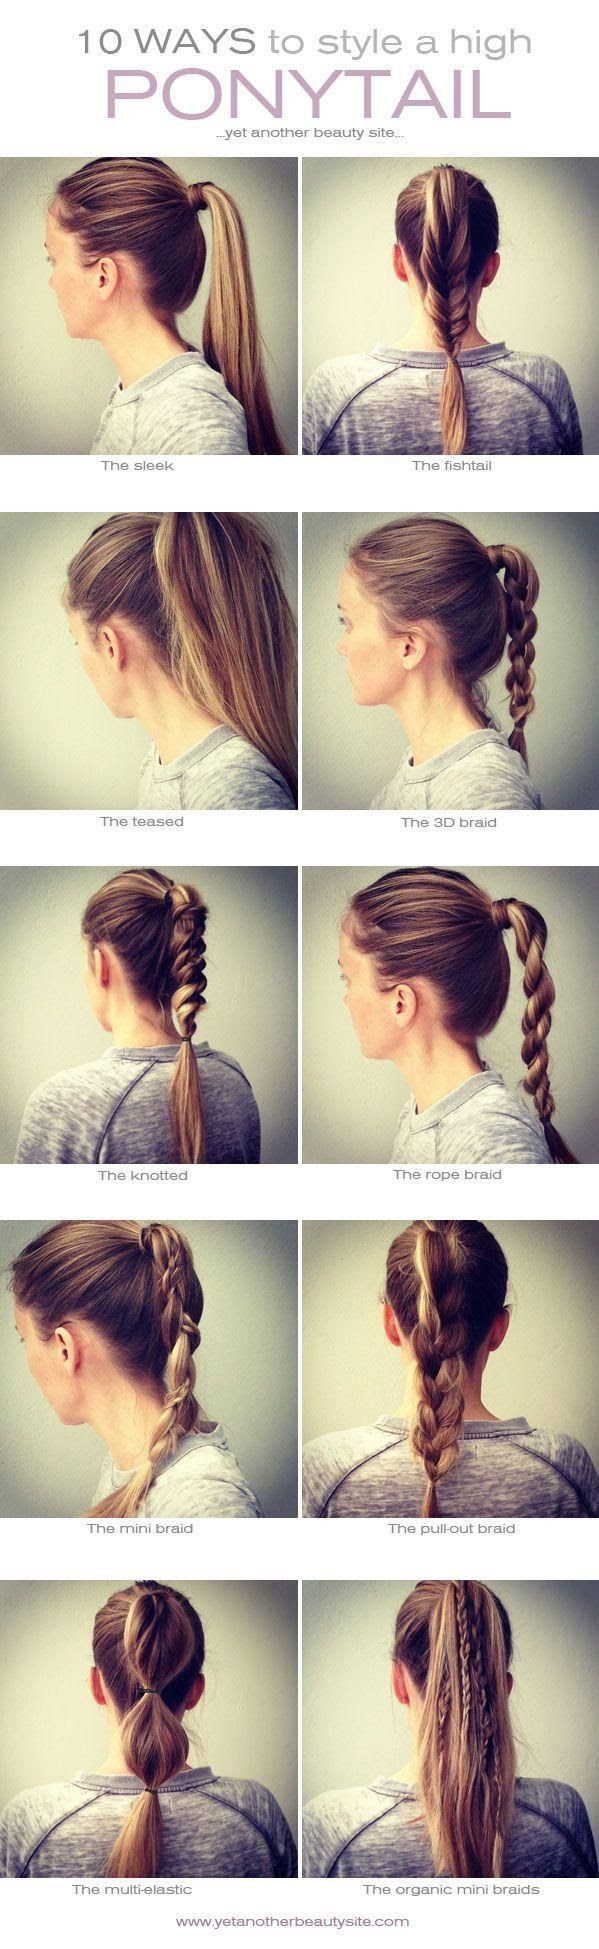 10 ways to style a high ponytail #Hairstyle